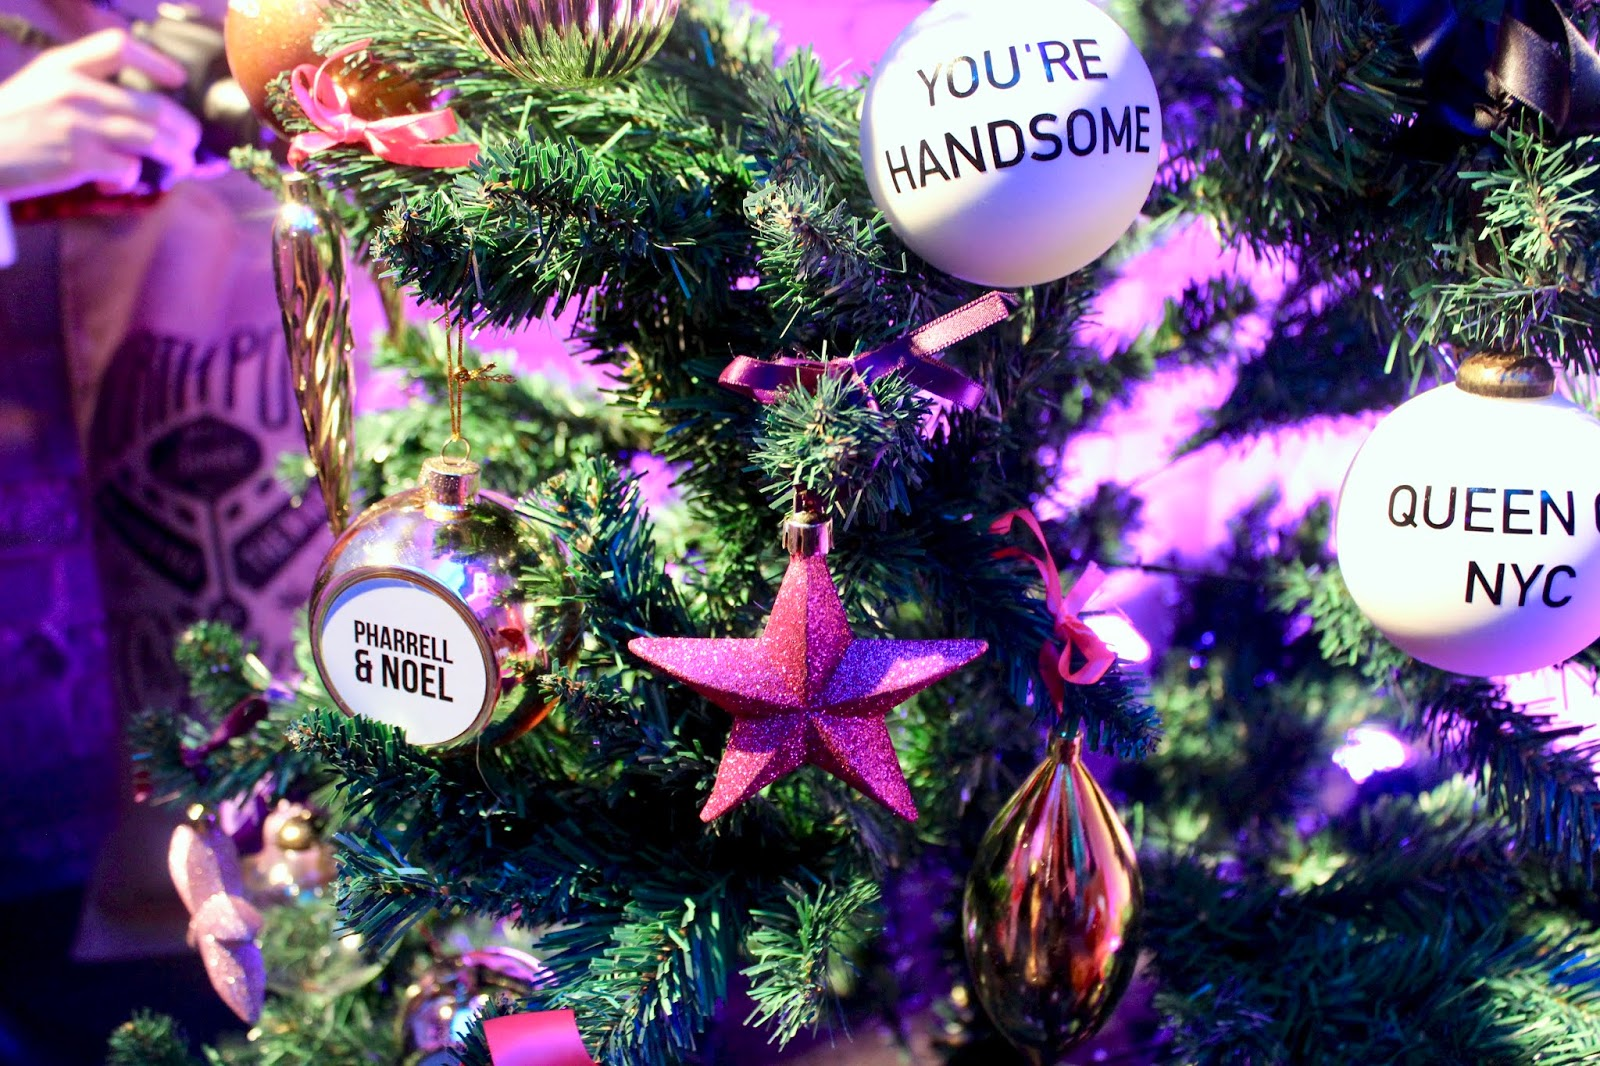 A star bauble on a Christmas tree